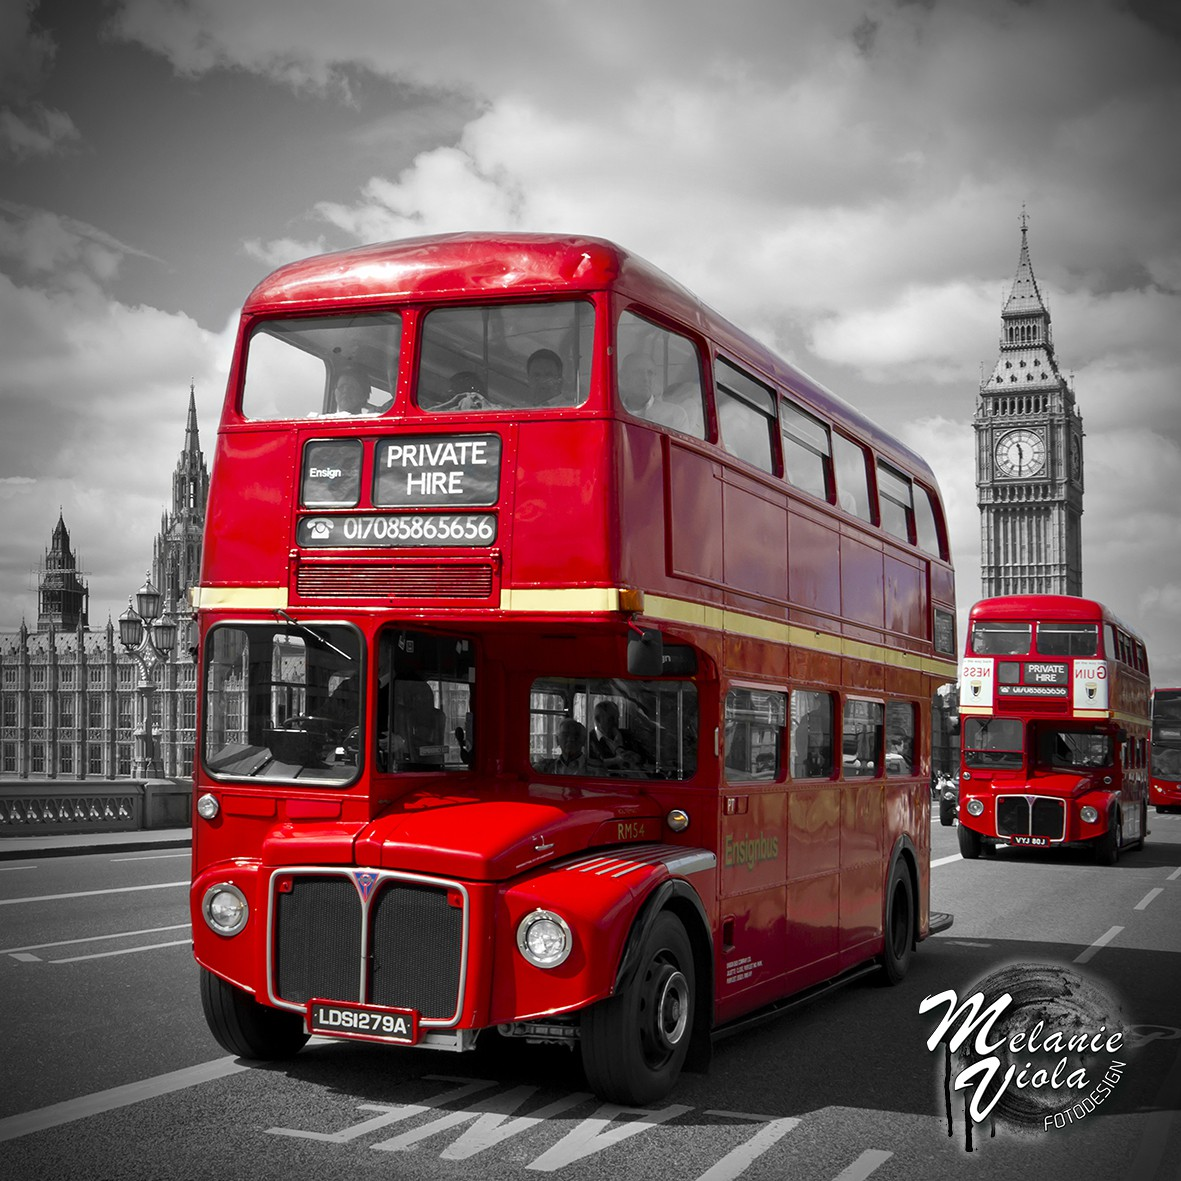 LINK - OhMyPrints Onlineshop - LONDON Rote Busse & Westminster Bridge